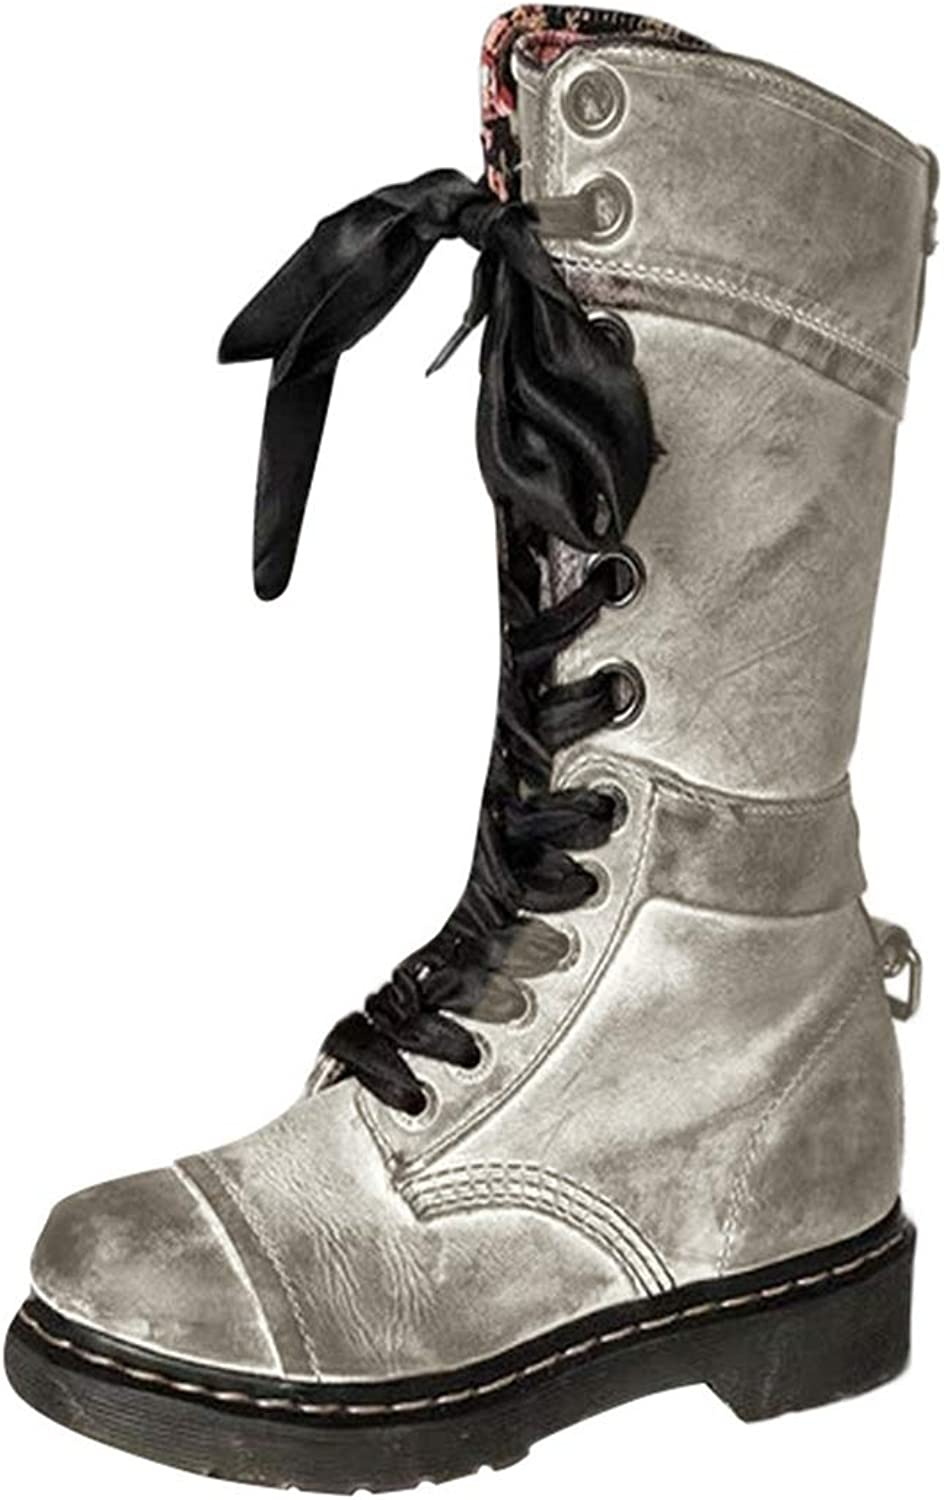 Kyle Walsh Pa Women Fashion Vintage Ankle Boots Leather Lace Up shoes Comfortable Casual Ladies Female Boots